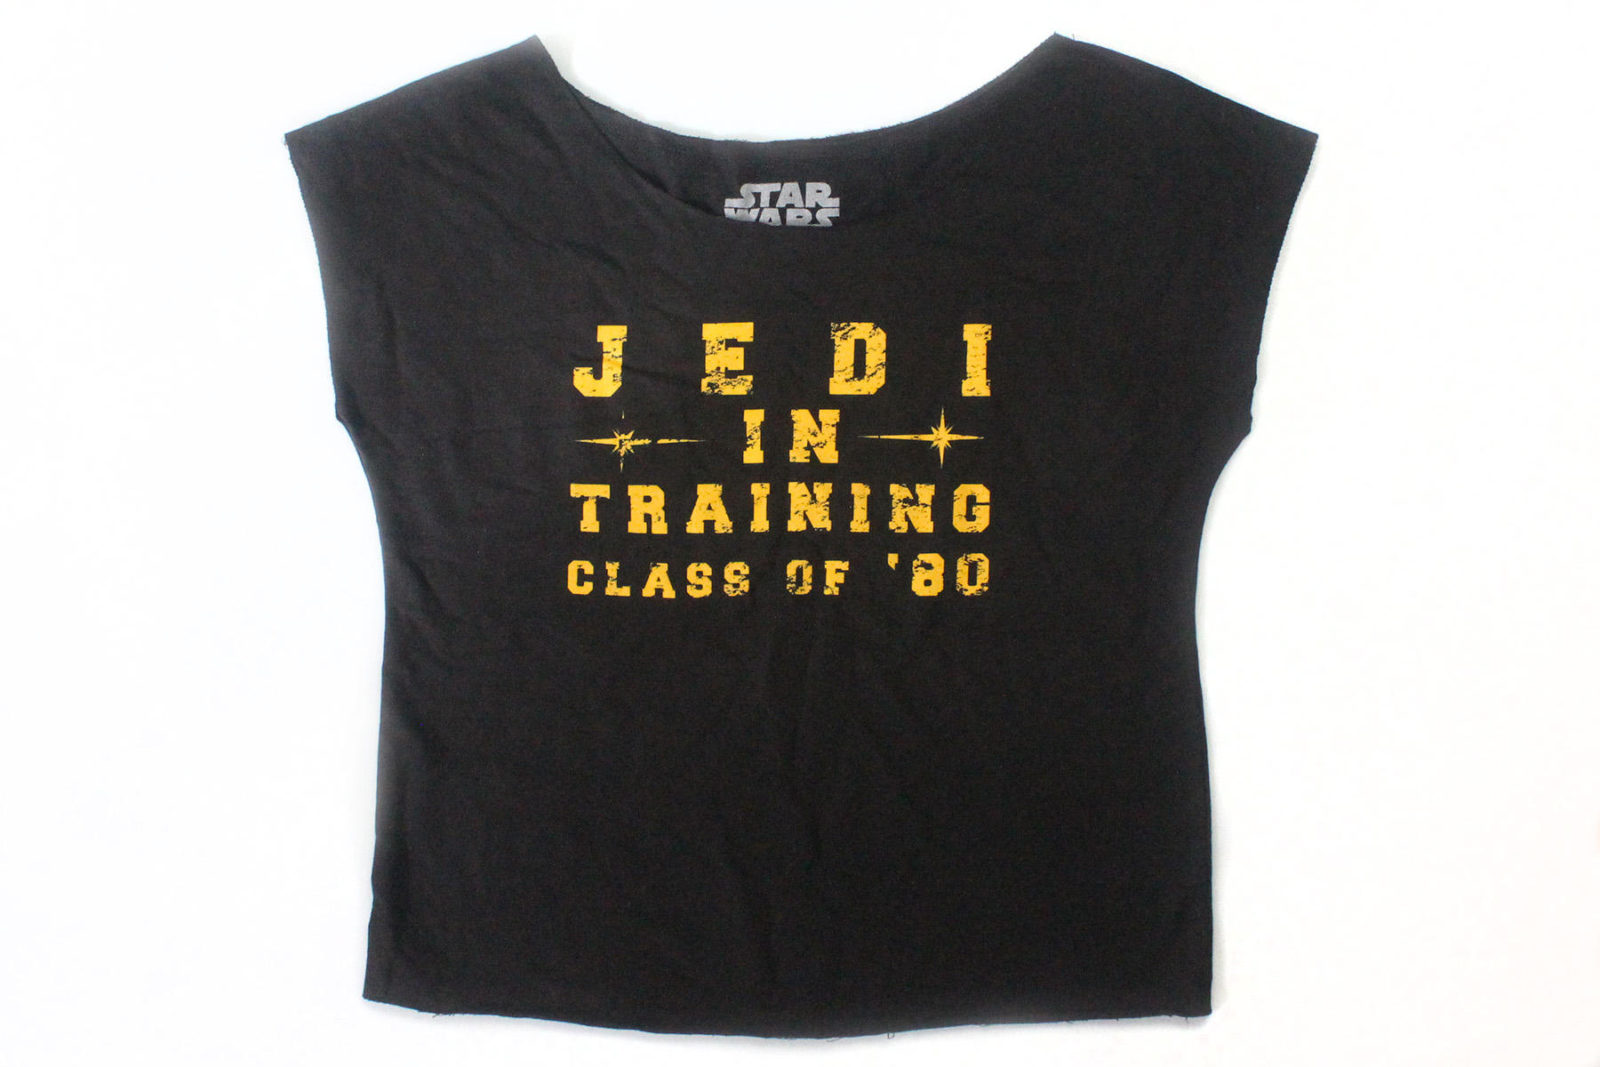 Review – Jedi In Training top